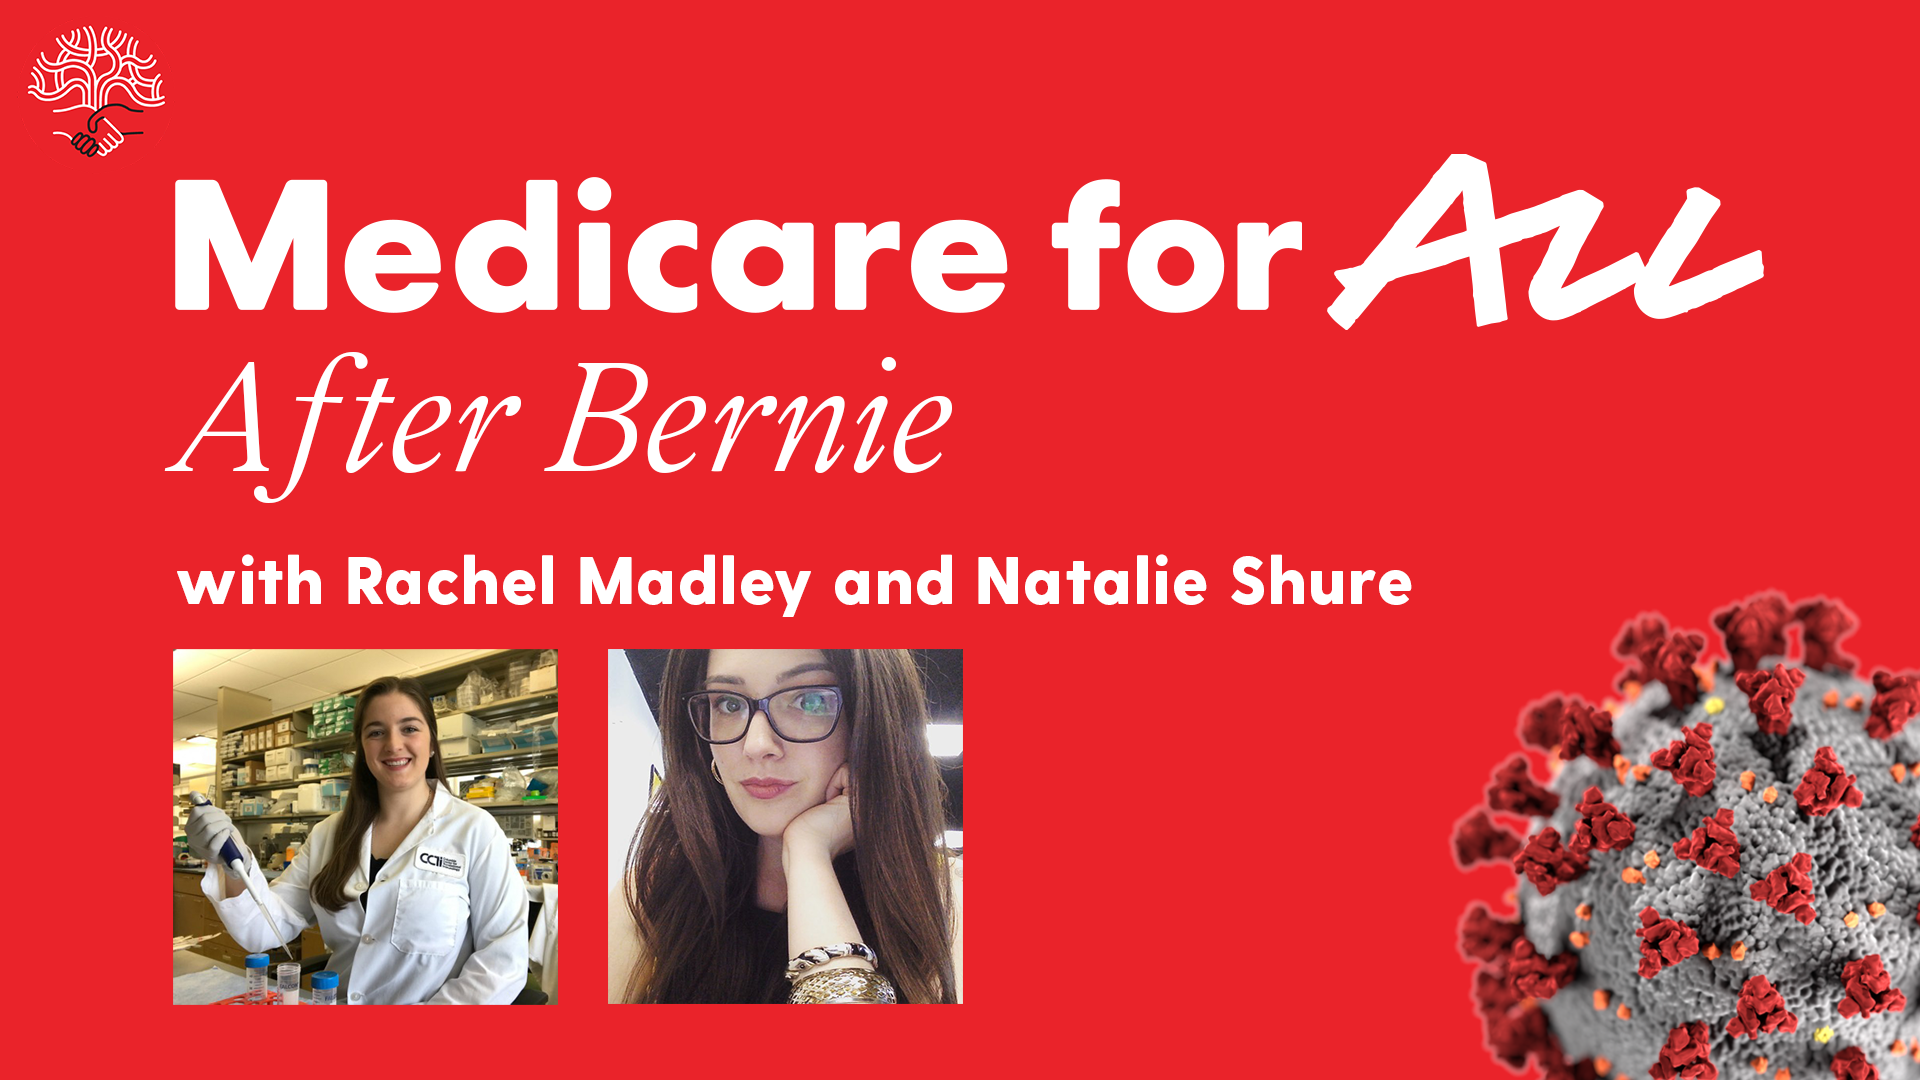 Socialist Night School: Medicare for All After Bernie @ ONLINE, VIA 'ZOOM'